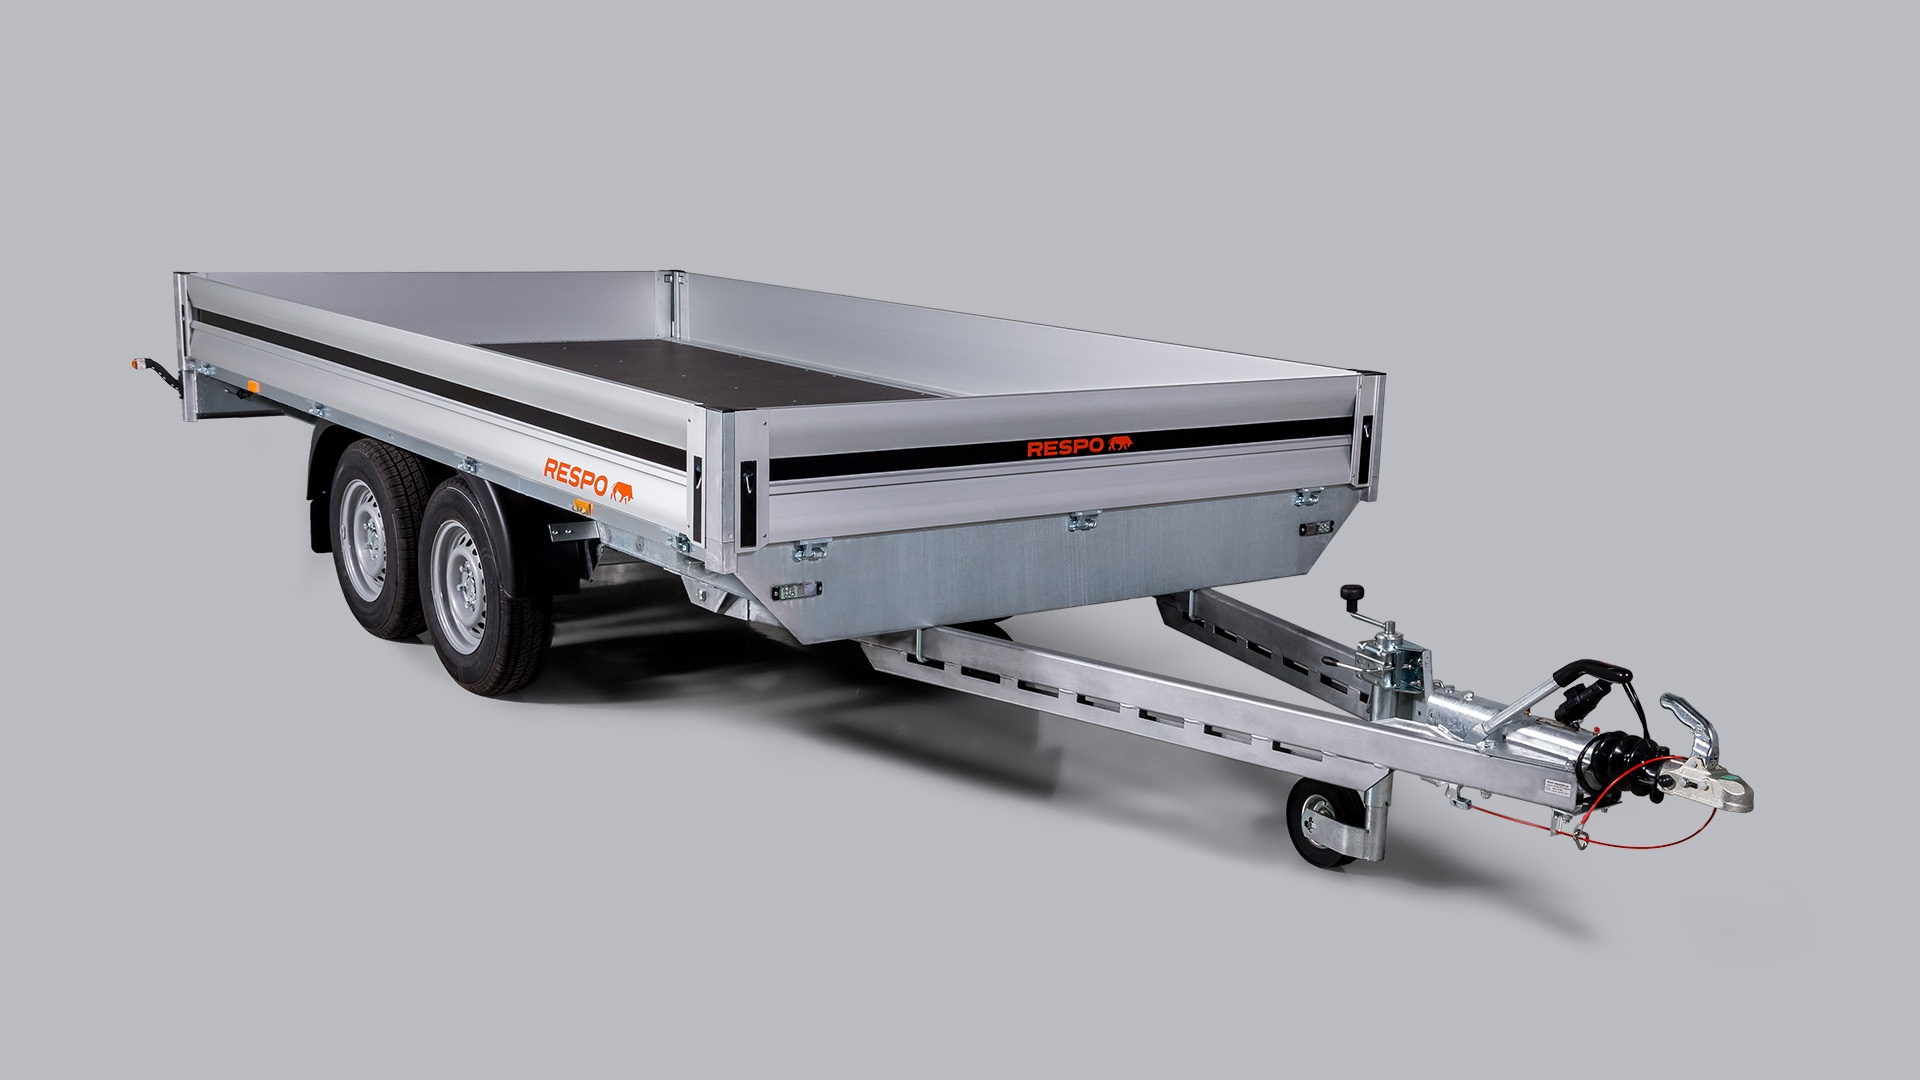 Respo Mesh Side Extensions for Flatbed trailers